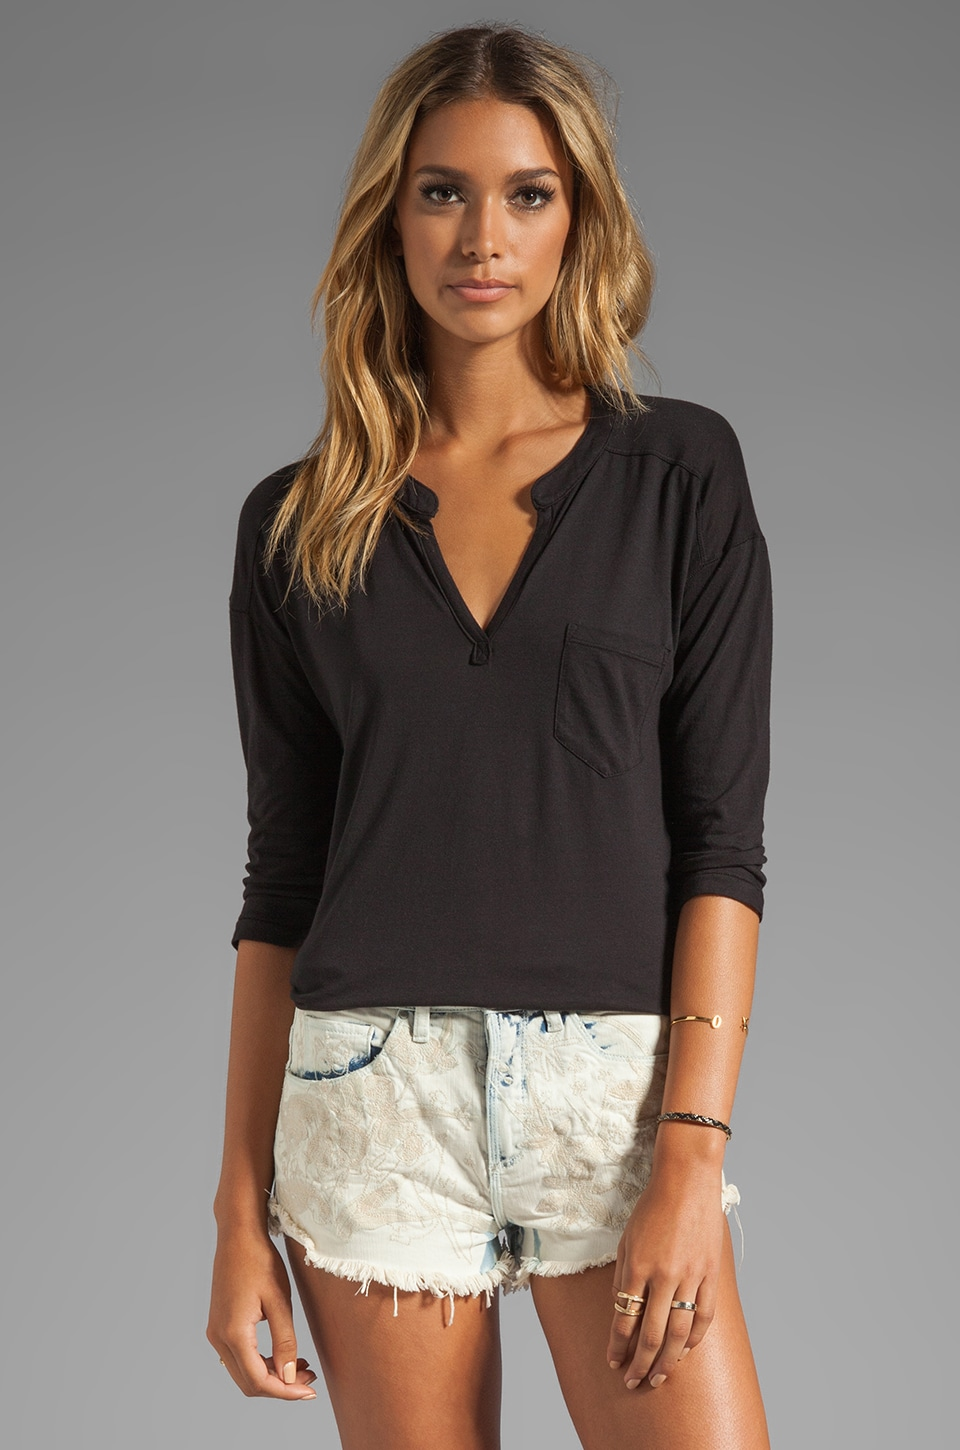 Splendid Long Sleeve Jersey Pocket Blouse in Black